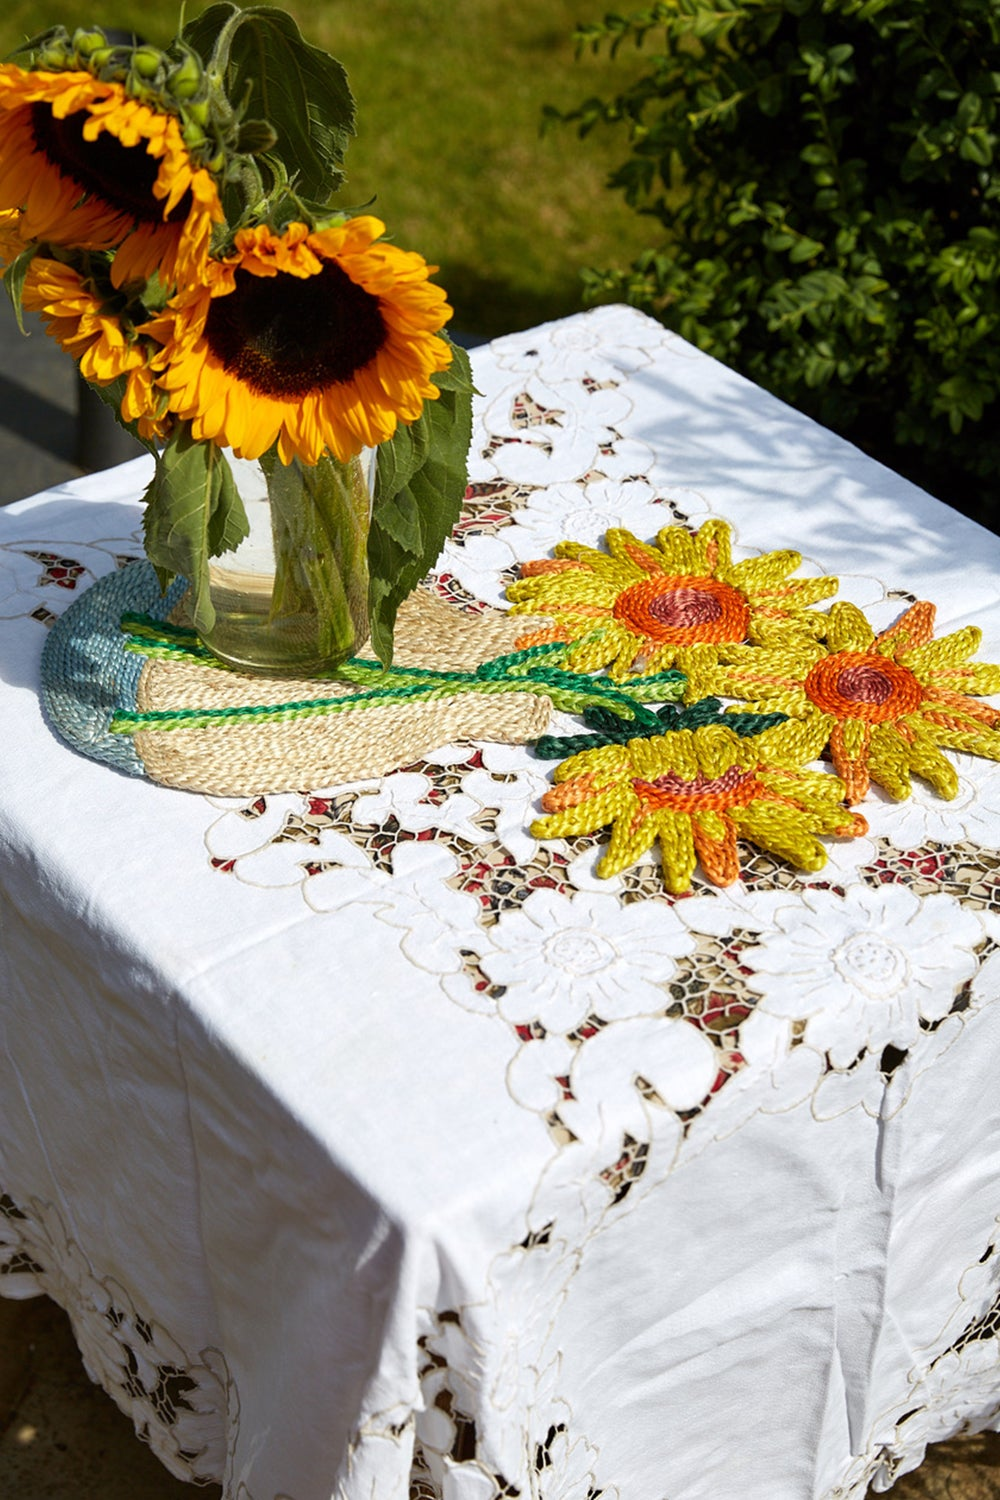 The Jacksons Bunch of Sunflowers Placemat